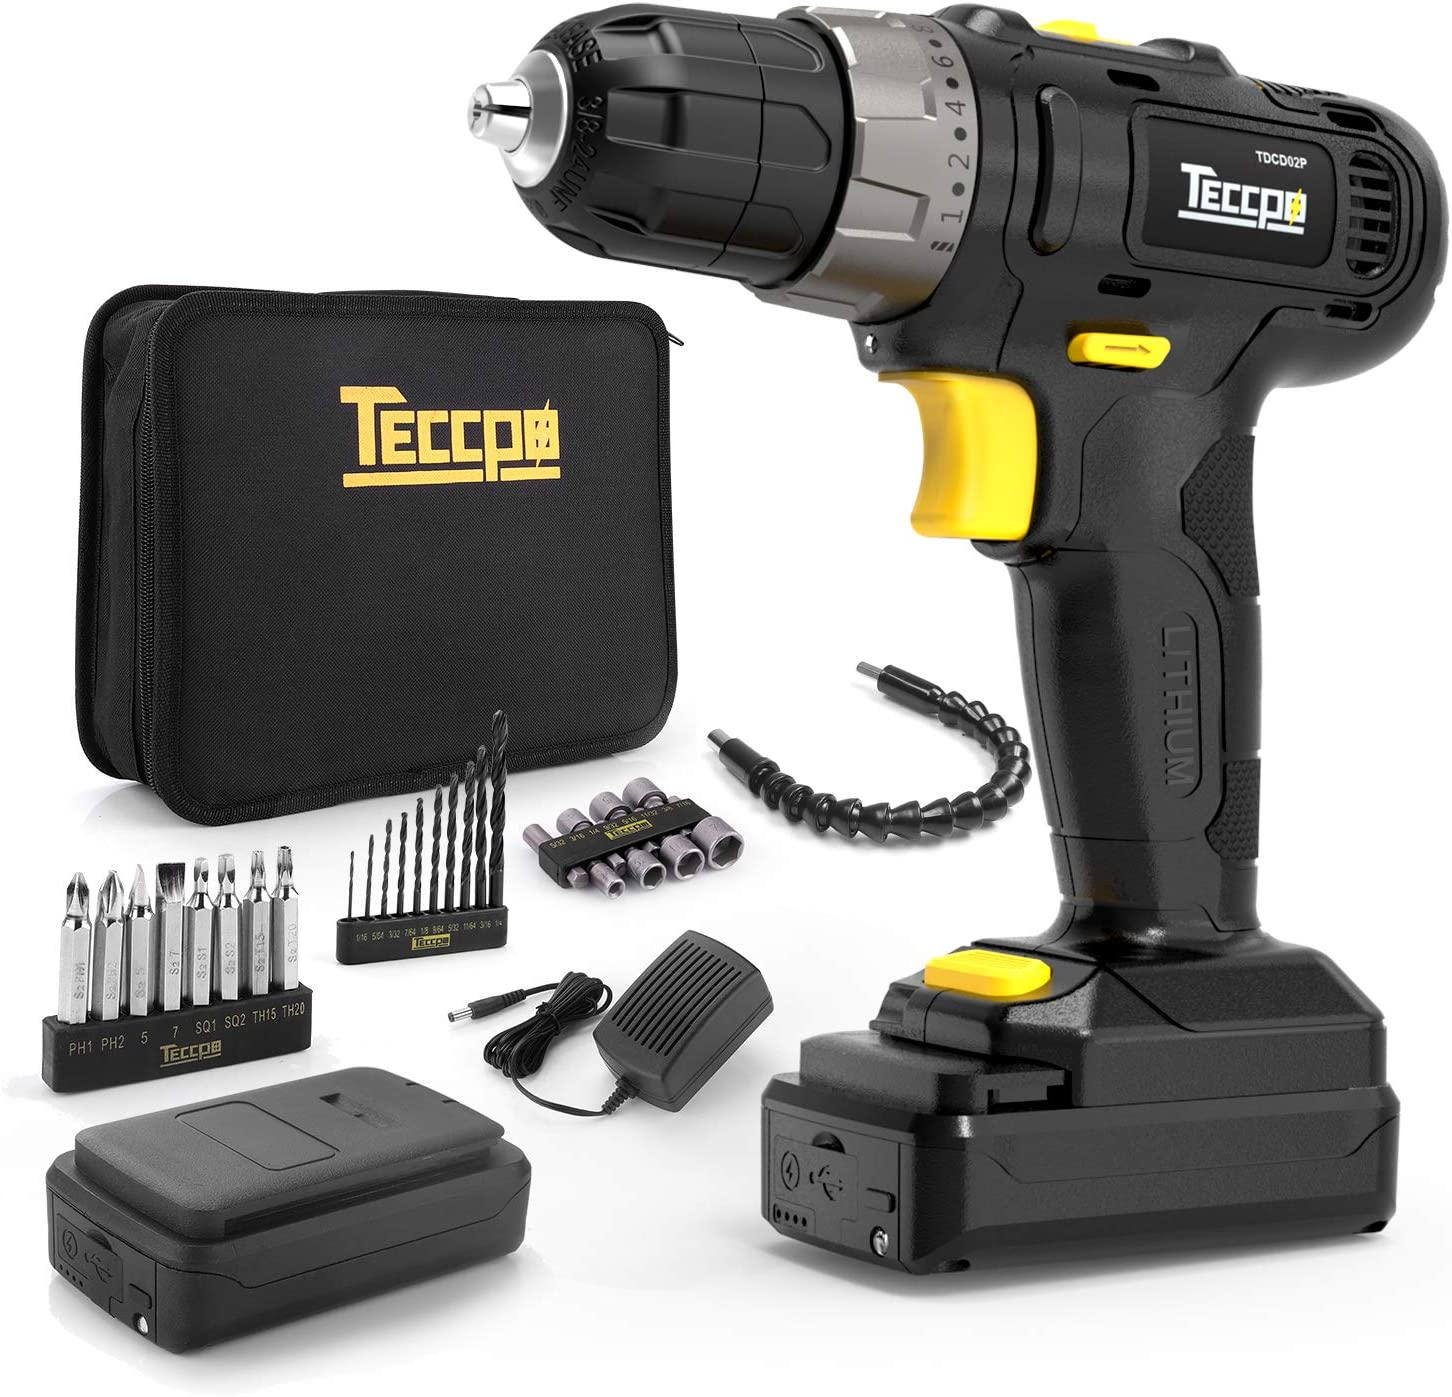 """12V Cordless Drill, 2pcs 2000mAh Lithium-Ion Compact Drill Set, 20+1 Position, 2-Speed Adjustment, Max Torque 240In-lbs, 3/8"""" Chuck Max, LED Light, 27pcs Accessories"""